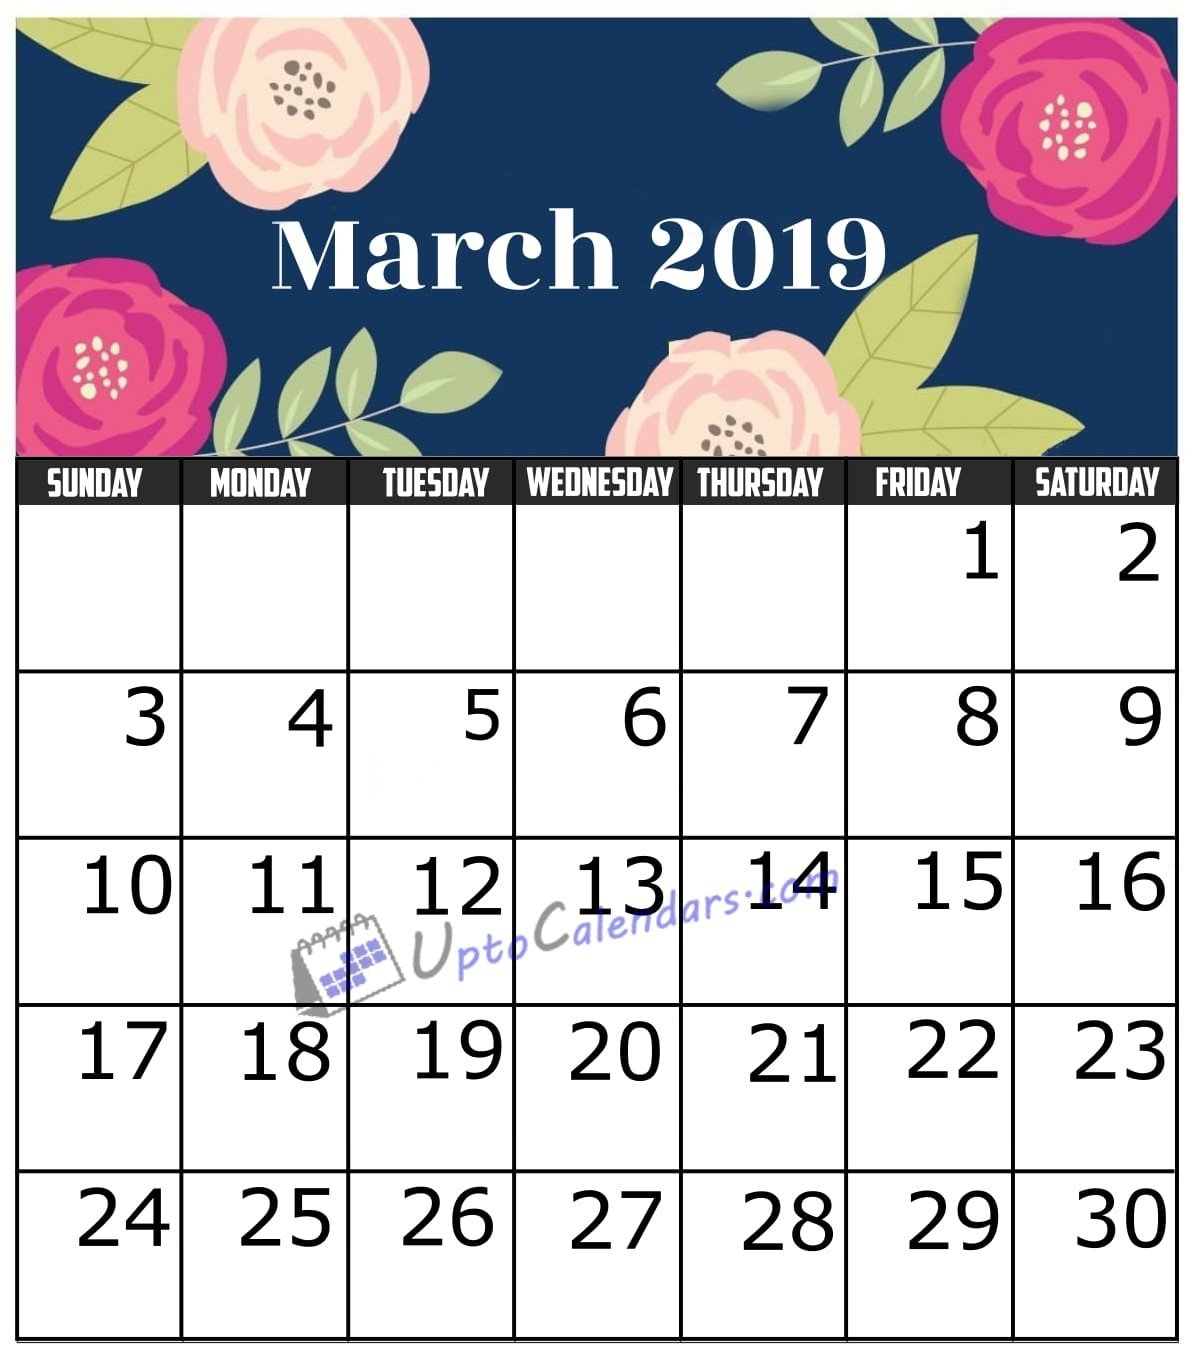 March 2019 Calendar Printable Template With Holidays Pdf Word Excel March 9 2019 Calendar